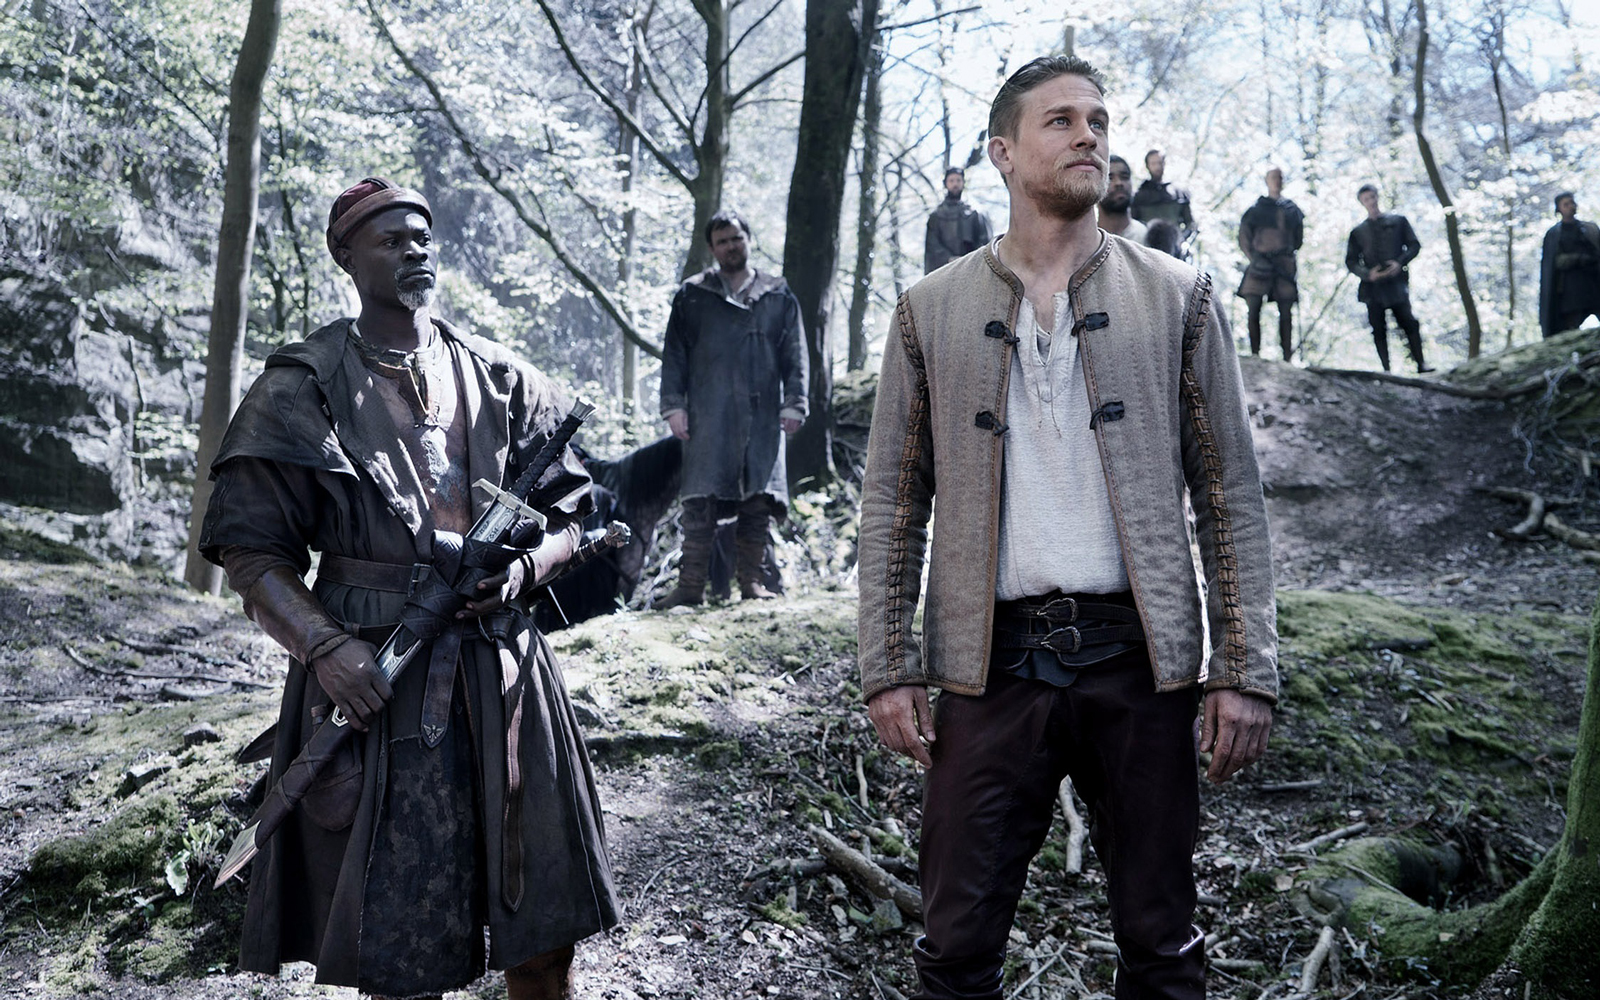 """King Arthur: Legend of the Sword"" stars Charlie Hunnam, Jude Law, Astrid Berges-Frisbey, and Djimon Hounsou."